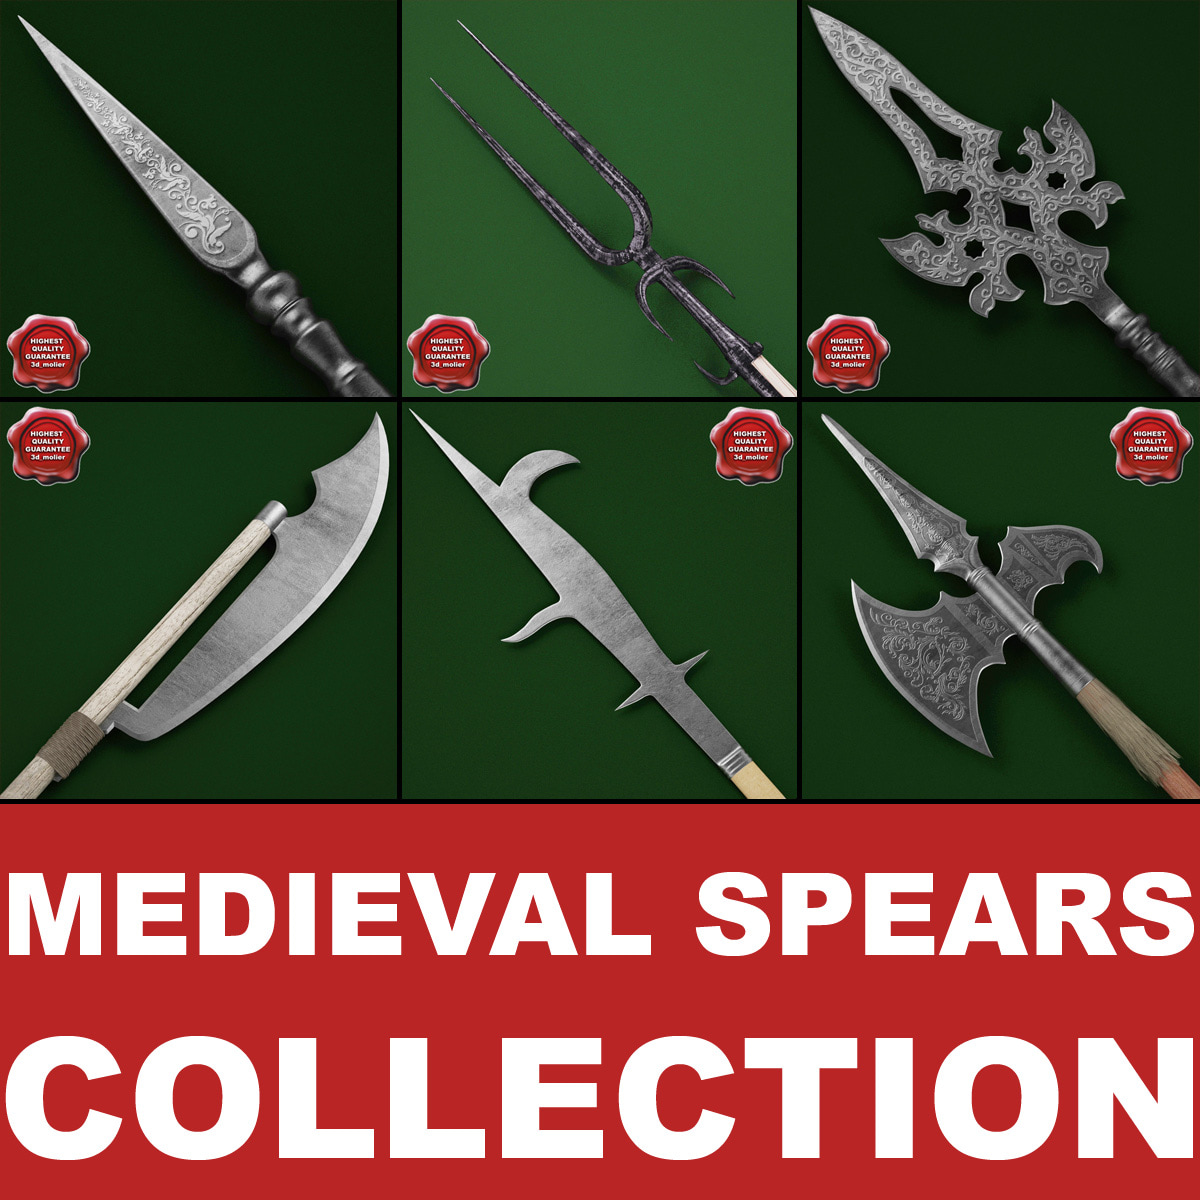 Medieval_Spears_Collection_V2_000.jpg